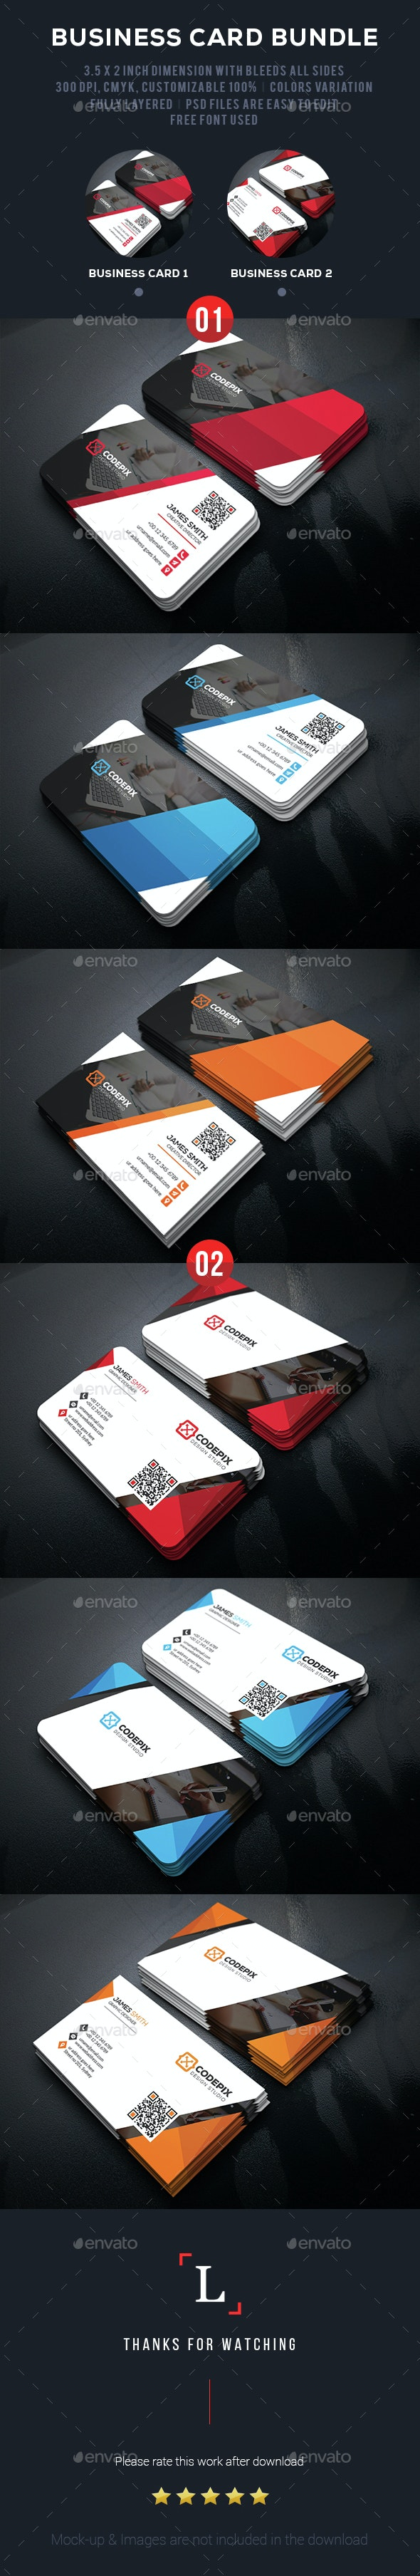 Shade Corporate Business Card Bundle - Business Cards Print Templates